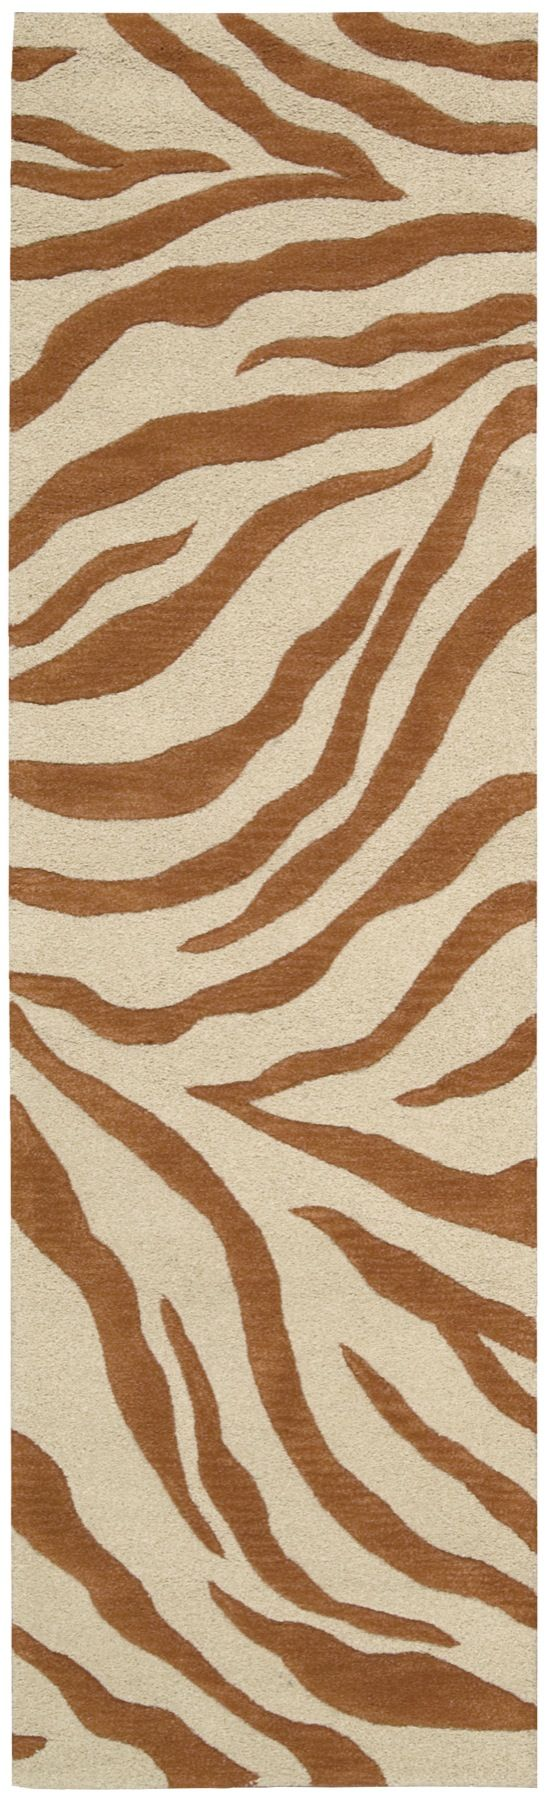 nourison skyland animal inspirations area rug collection